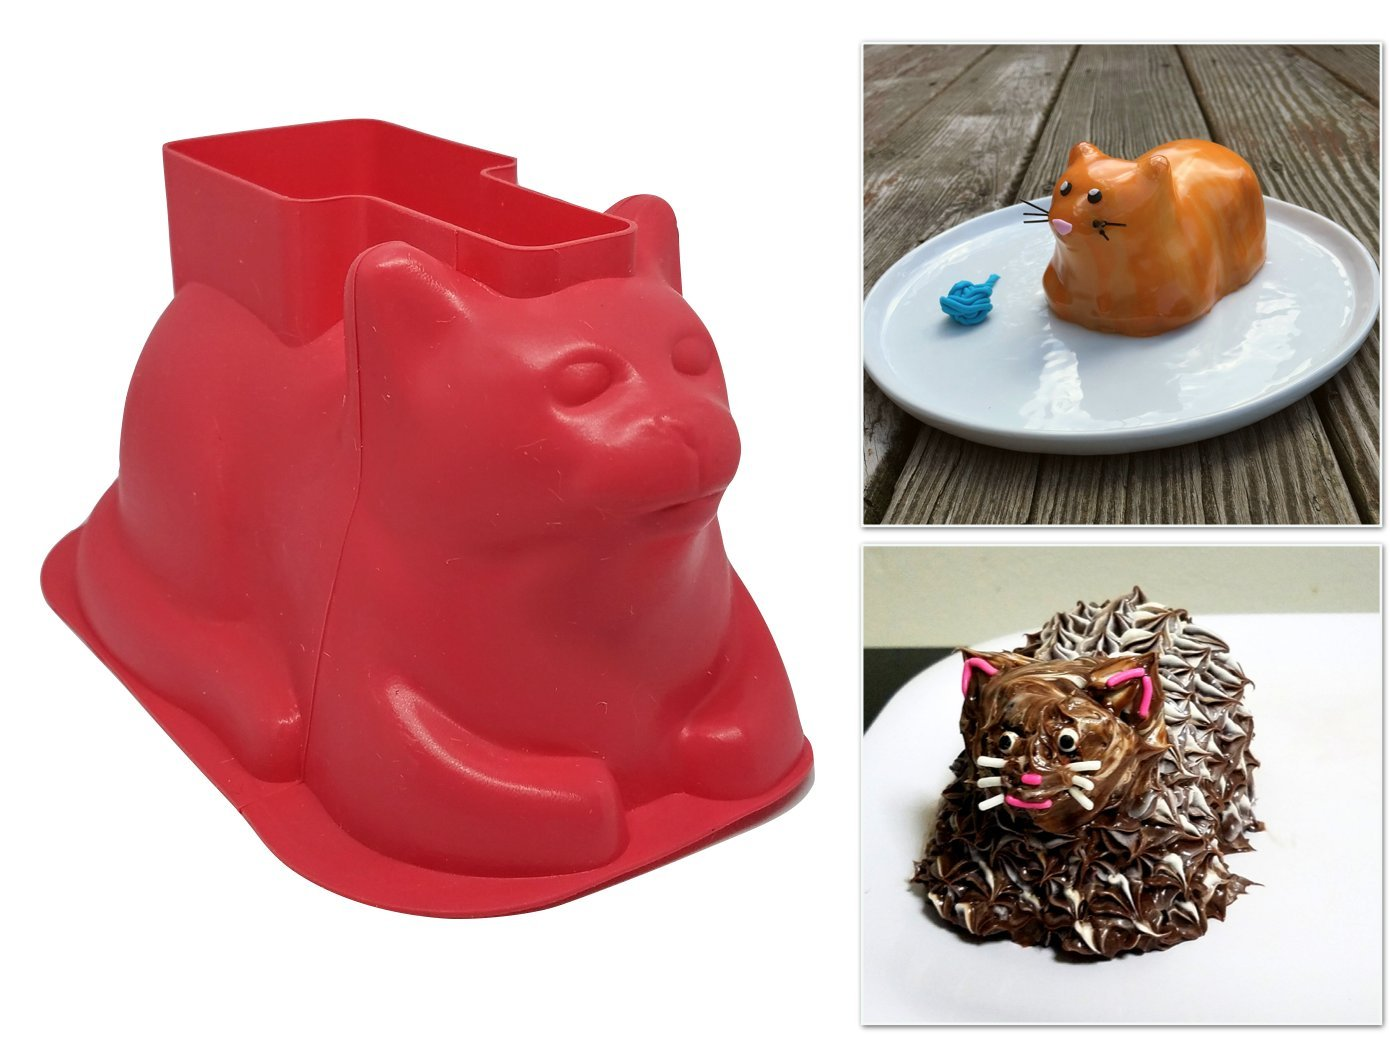 Mini Cat Shaped Cake Molds (4 Pack, Silicone) - For Cakes, Cup cakes, chocolate - Great For Parties, Holidays, Halloween - Unique Baking Gifts for Cat Lovers, Cupcake Lovers - Charlie Cat Baking by Charlie Cat